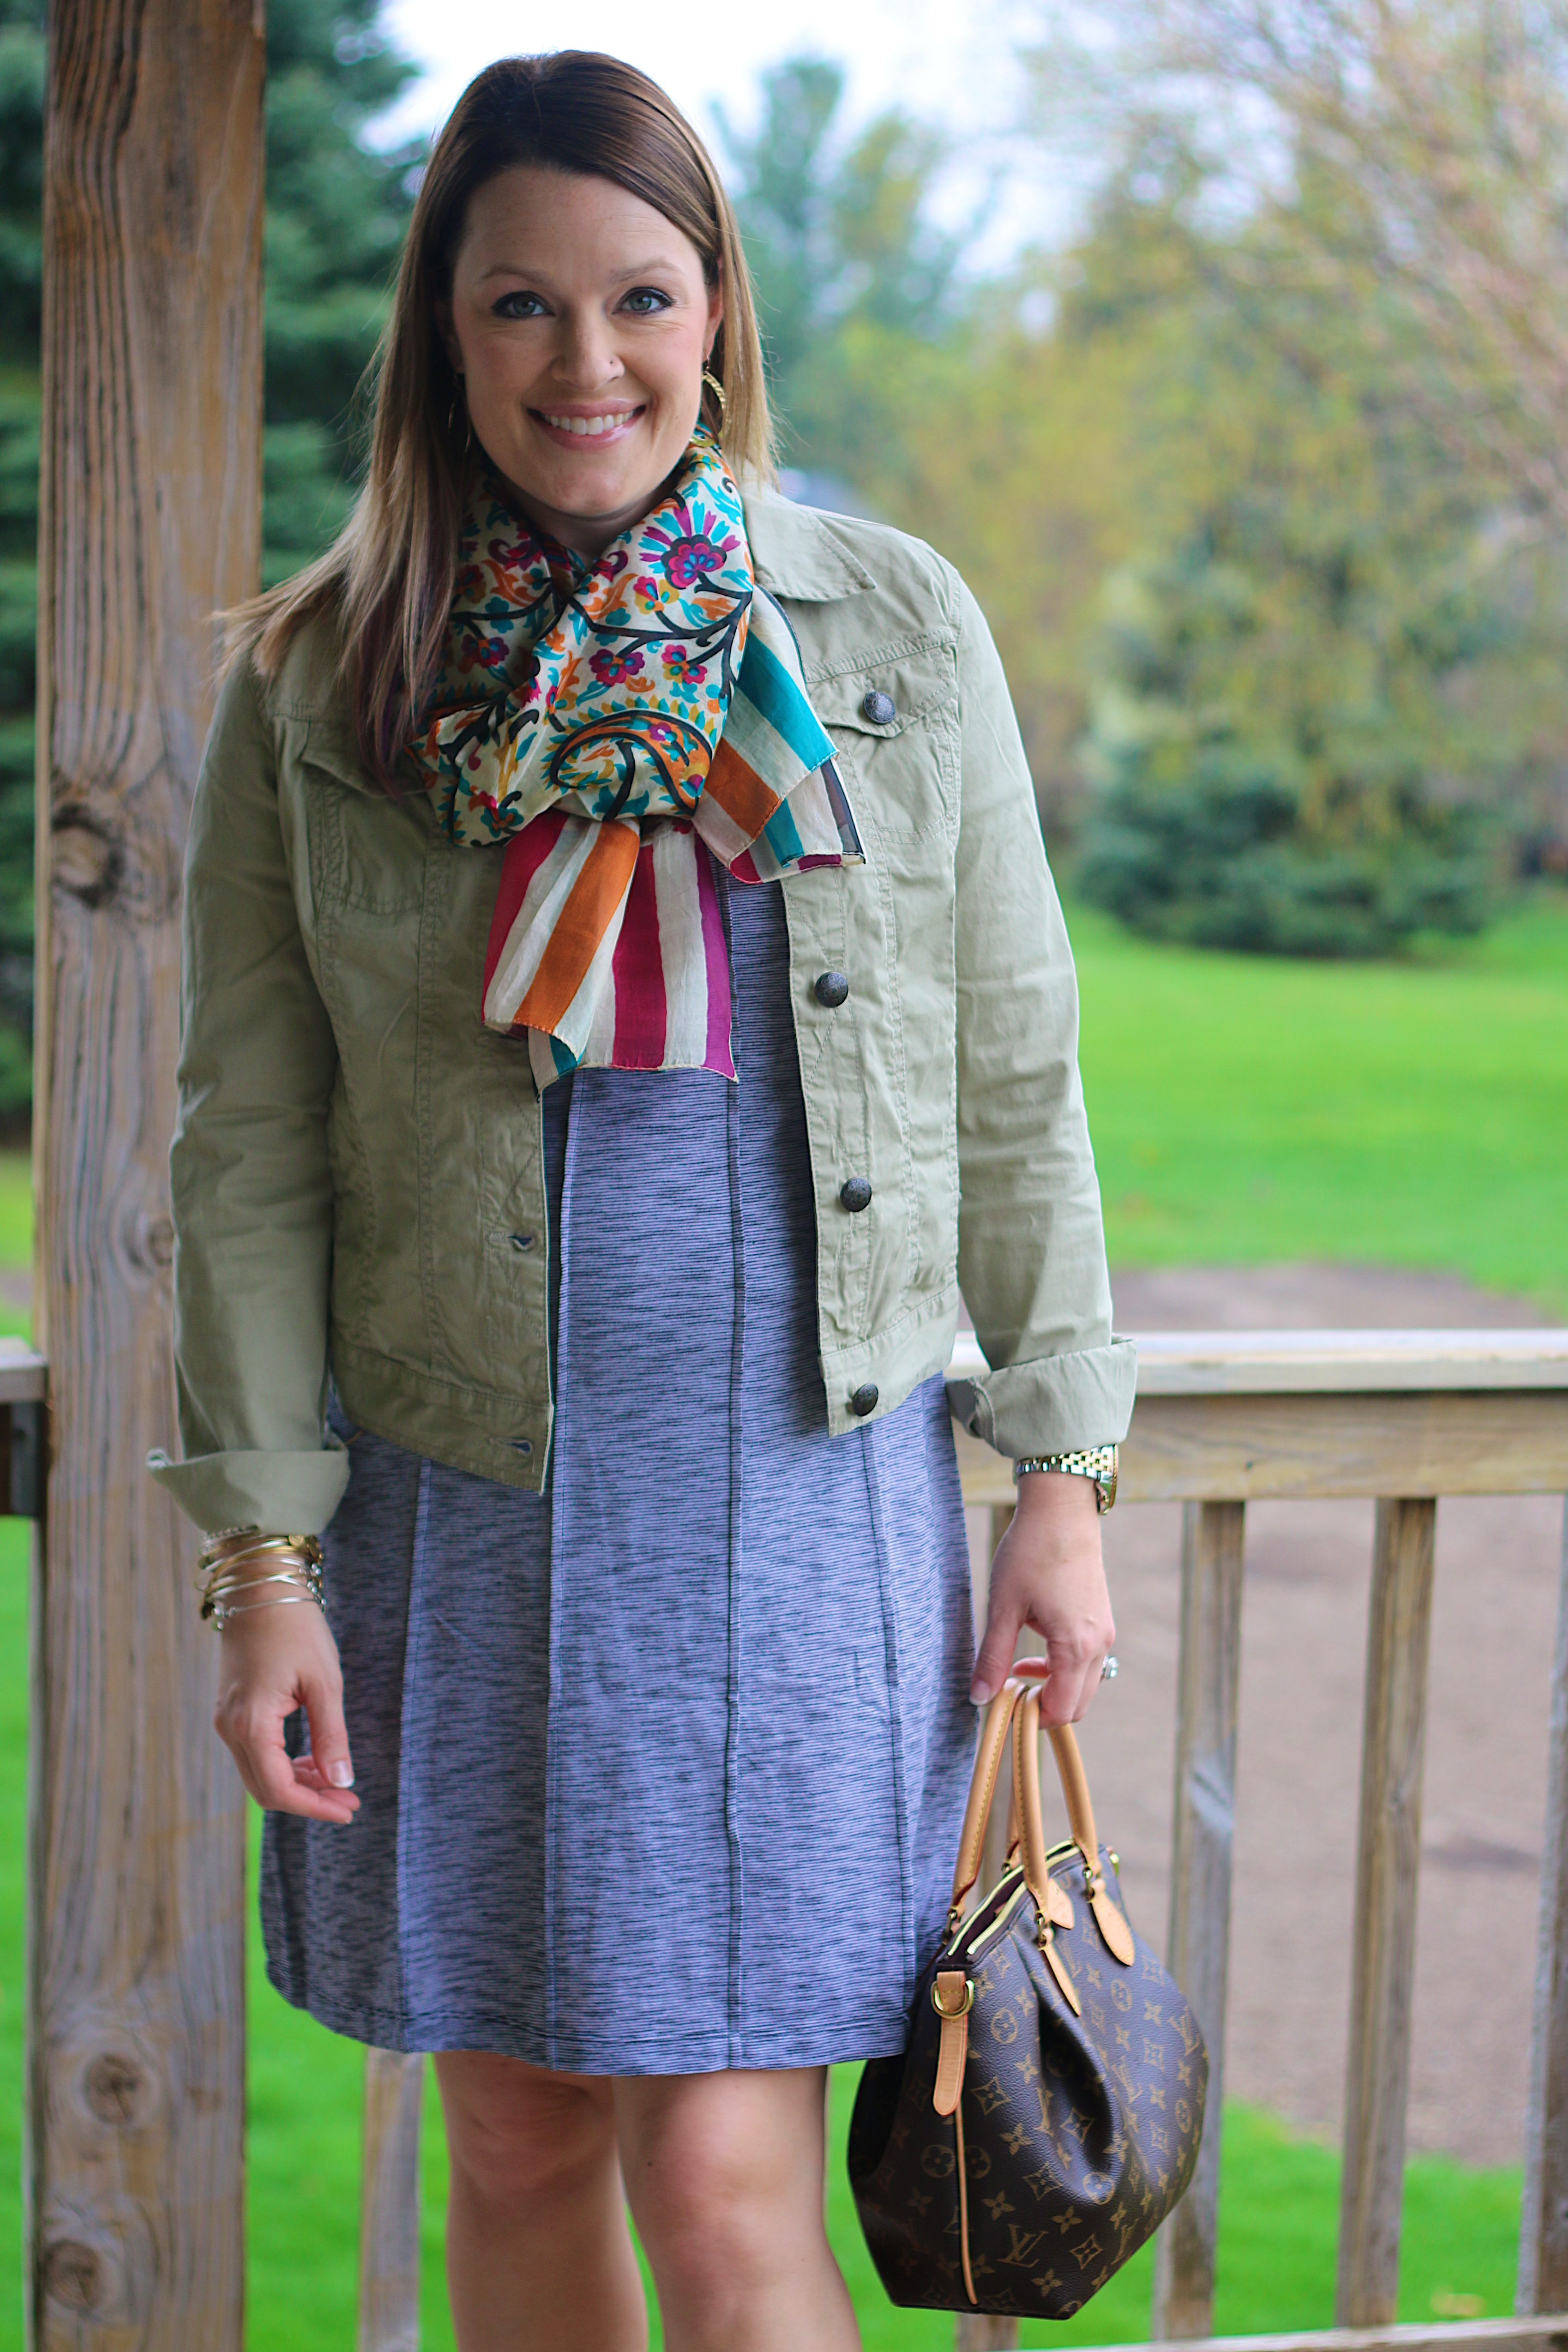 Aventura Clothing outfit for Spring